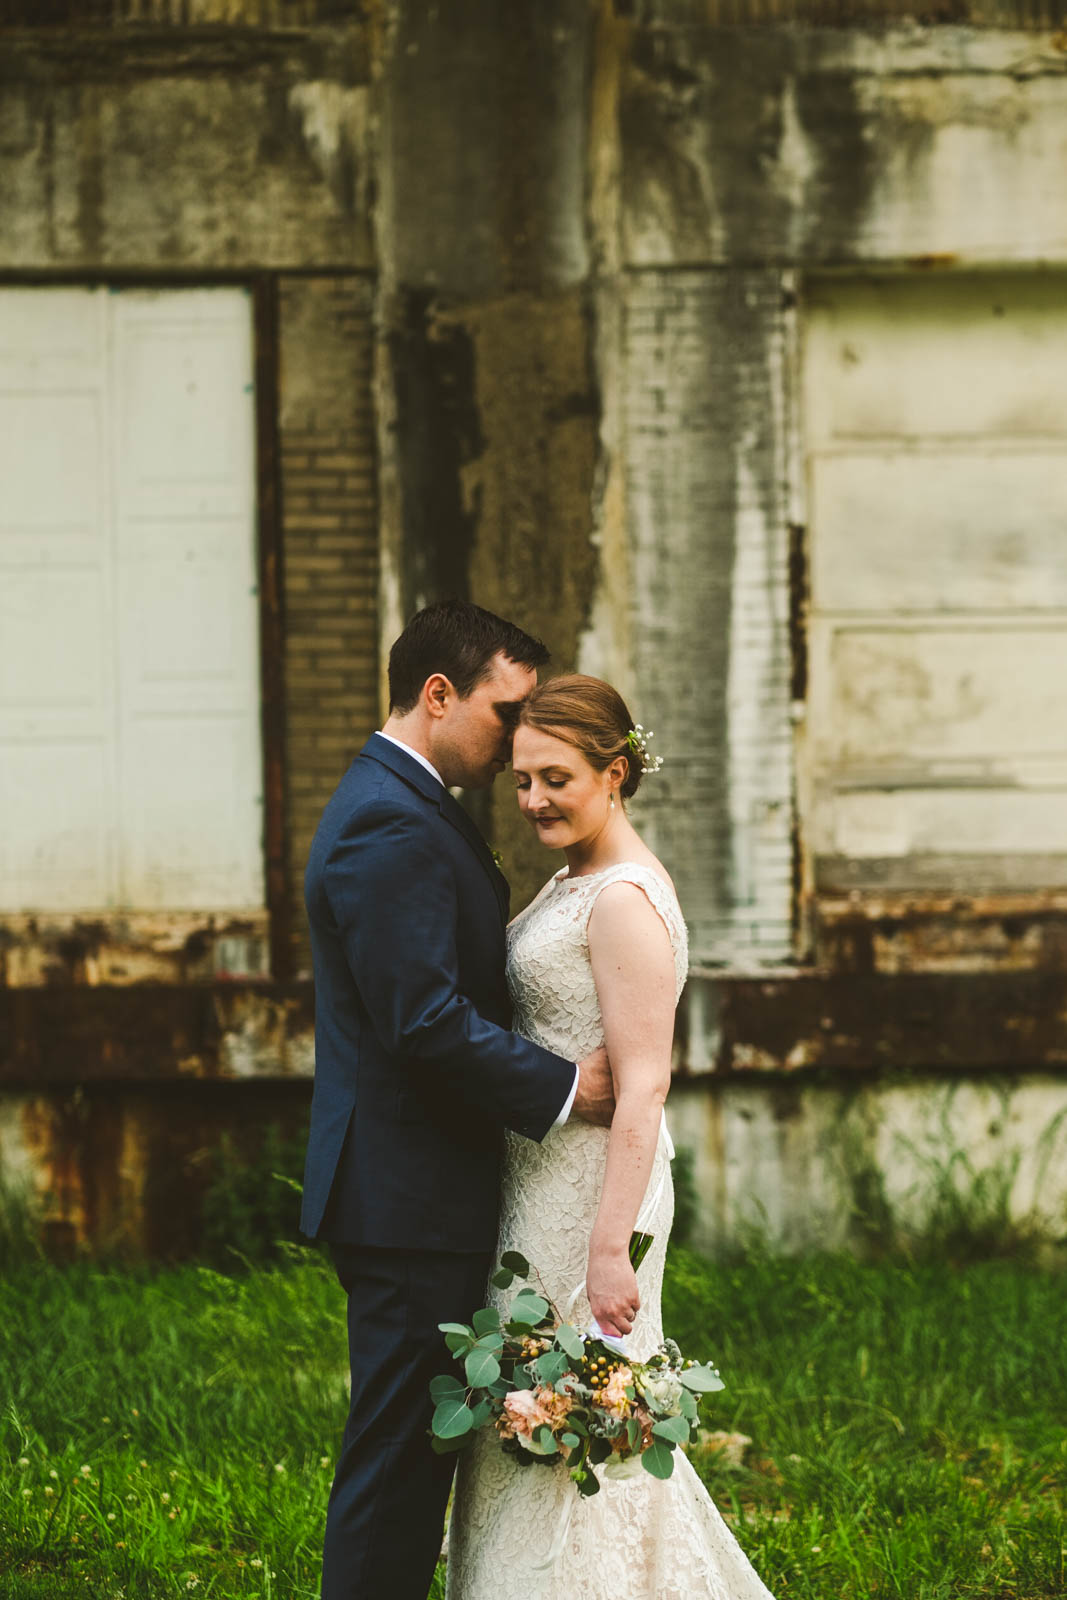 Bride and Groom on Wedding Day in Toledo Near Maumee Bay Brewing Company Warehouse